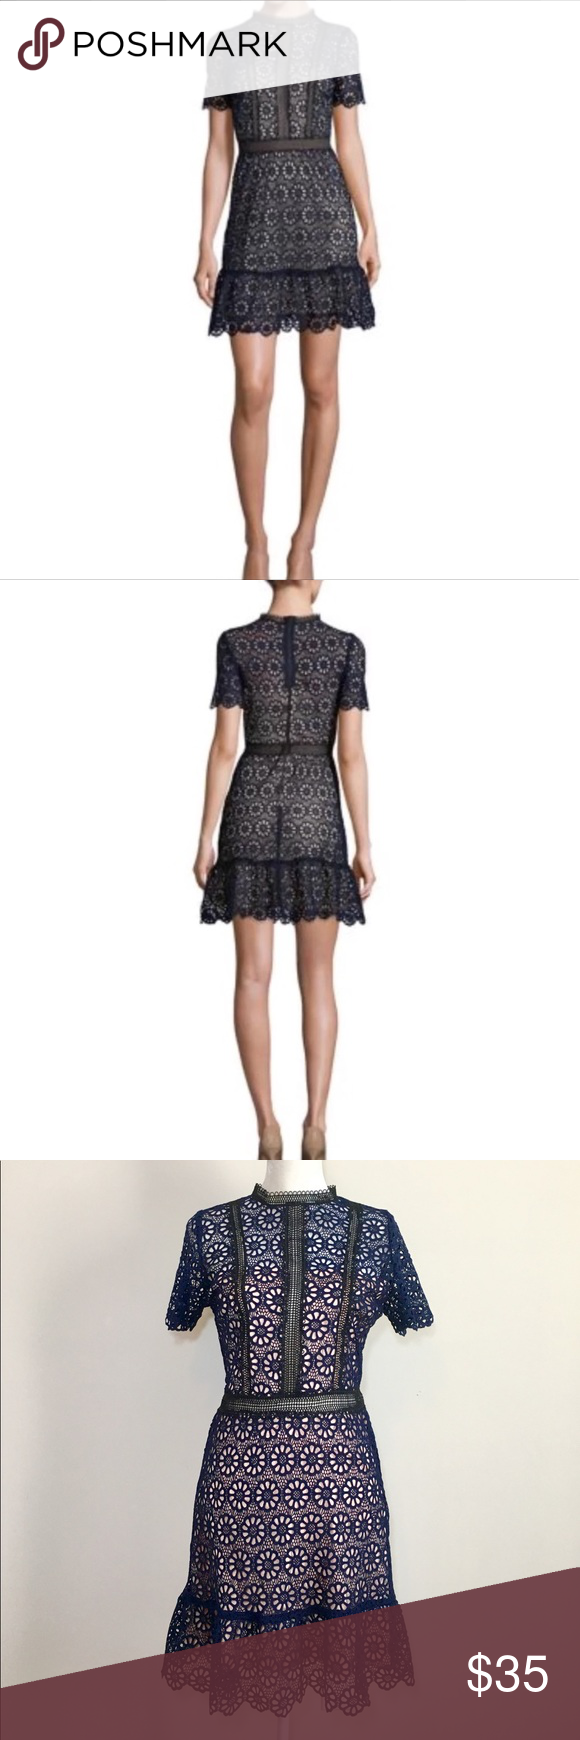 Design Lab Lordtaylor Navy Lace Dress Size Lm Clothing